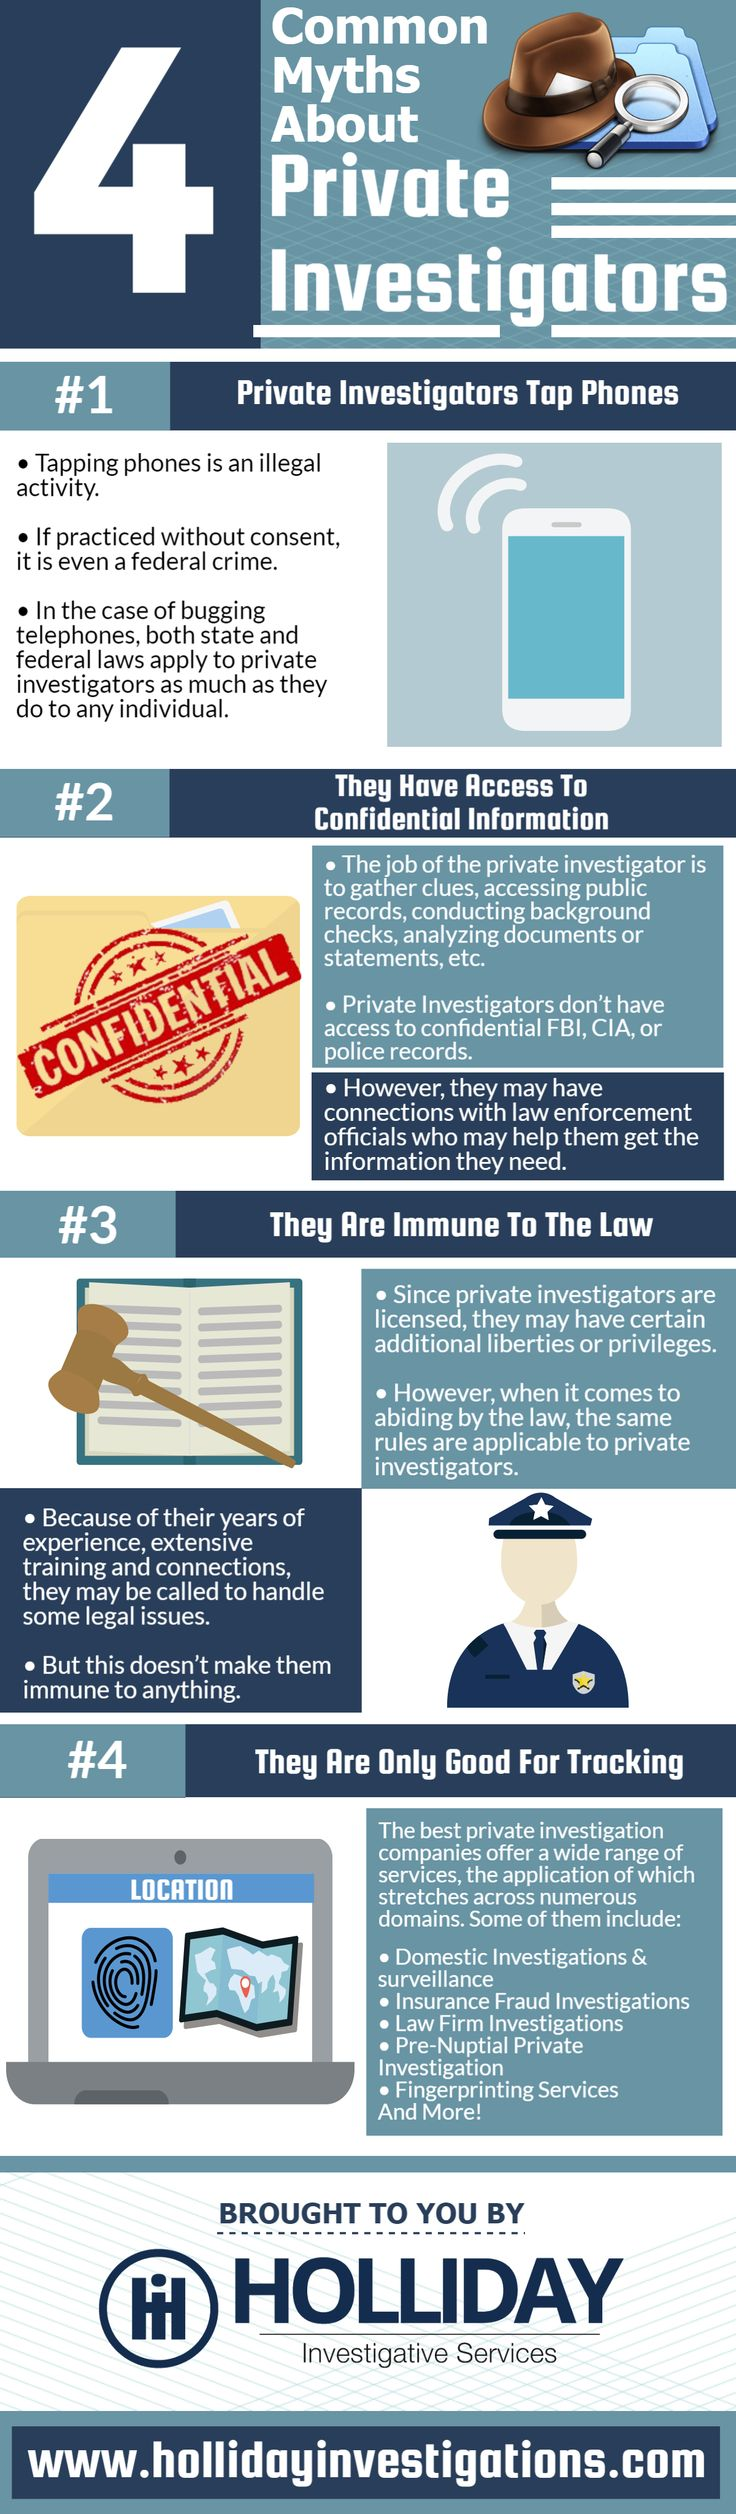 4 Common Myths About Private Investigators   Private Investigators Tap Phones  Tapping phones is an illegal activity.  If practiced without consent, it is even a federal crime.  In the case of bugging telephones, both state and federal laws apply to private investigators as much as they do to any individual.